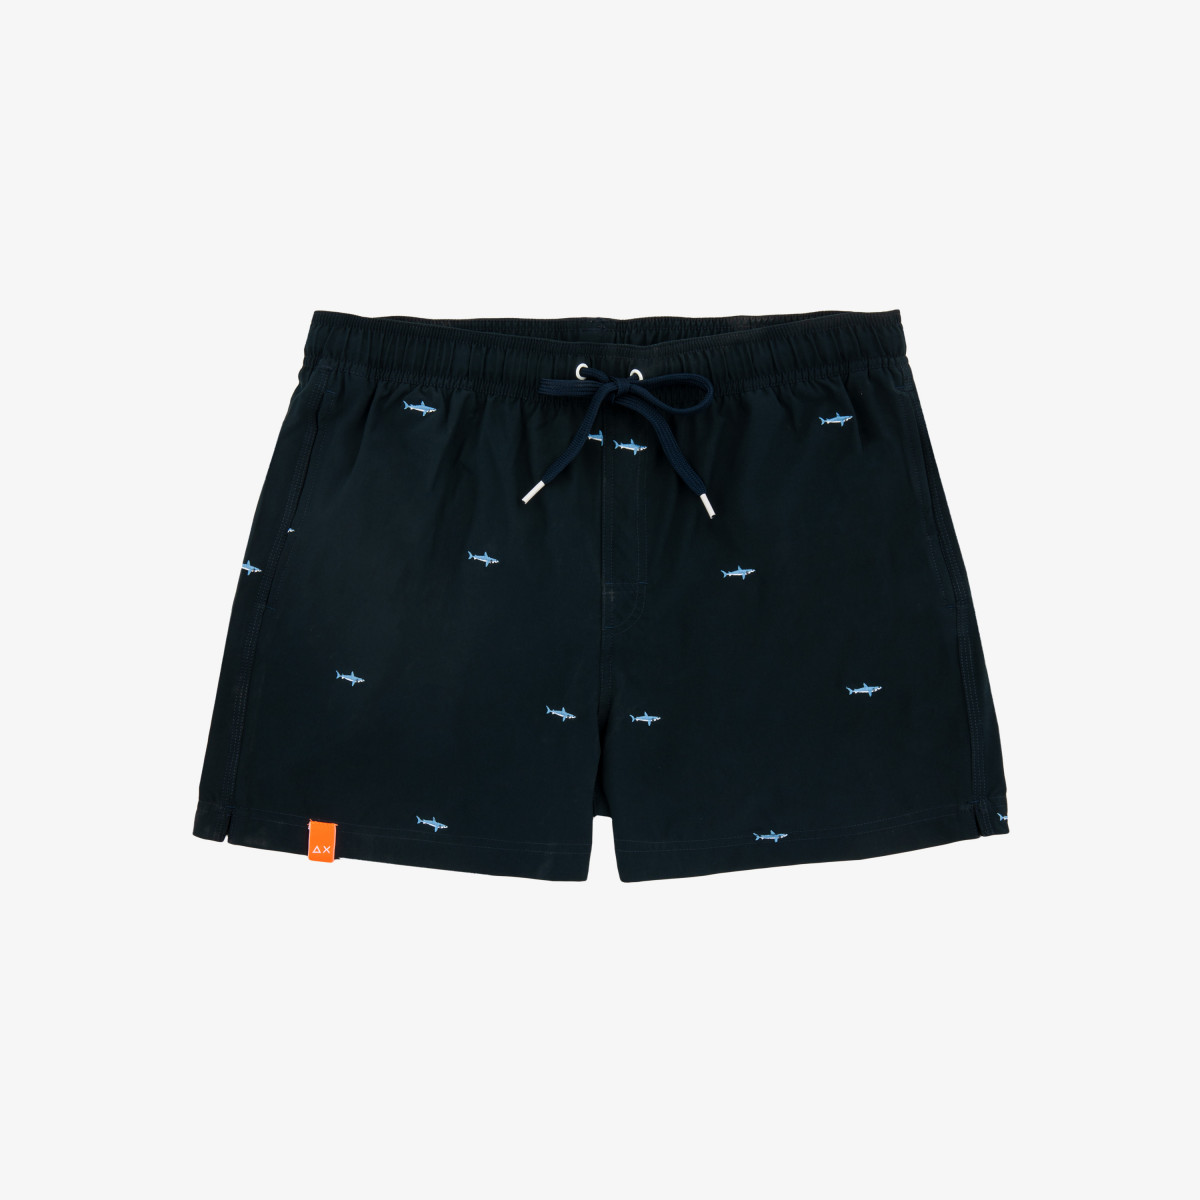 SWIM PANT EMBRODERY NAVY BLUE